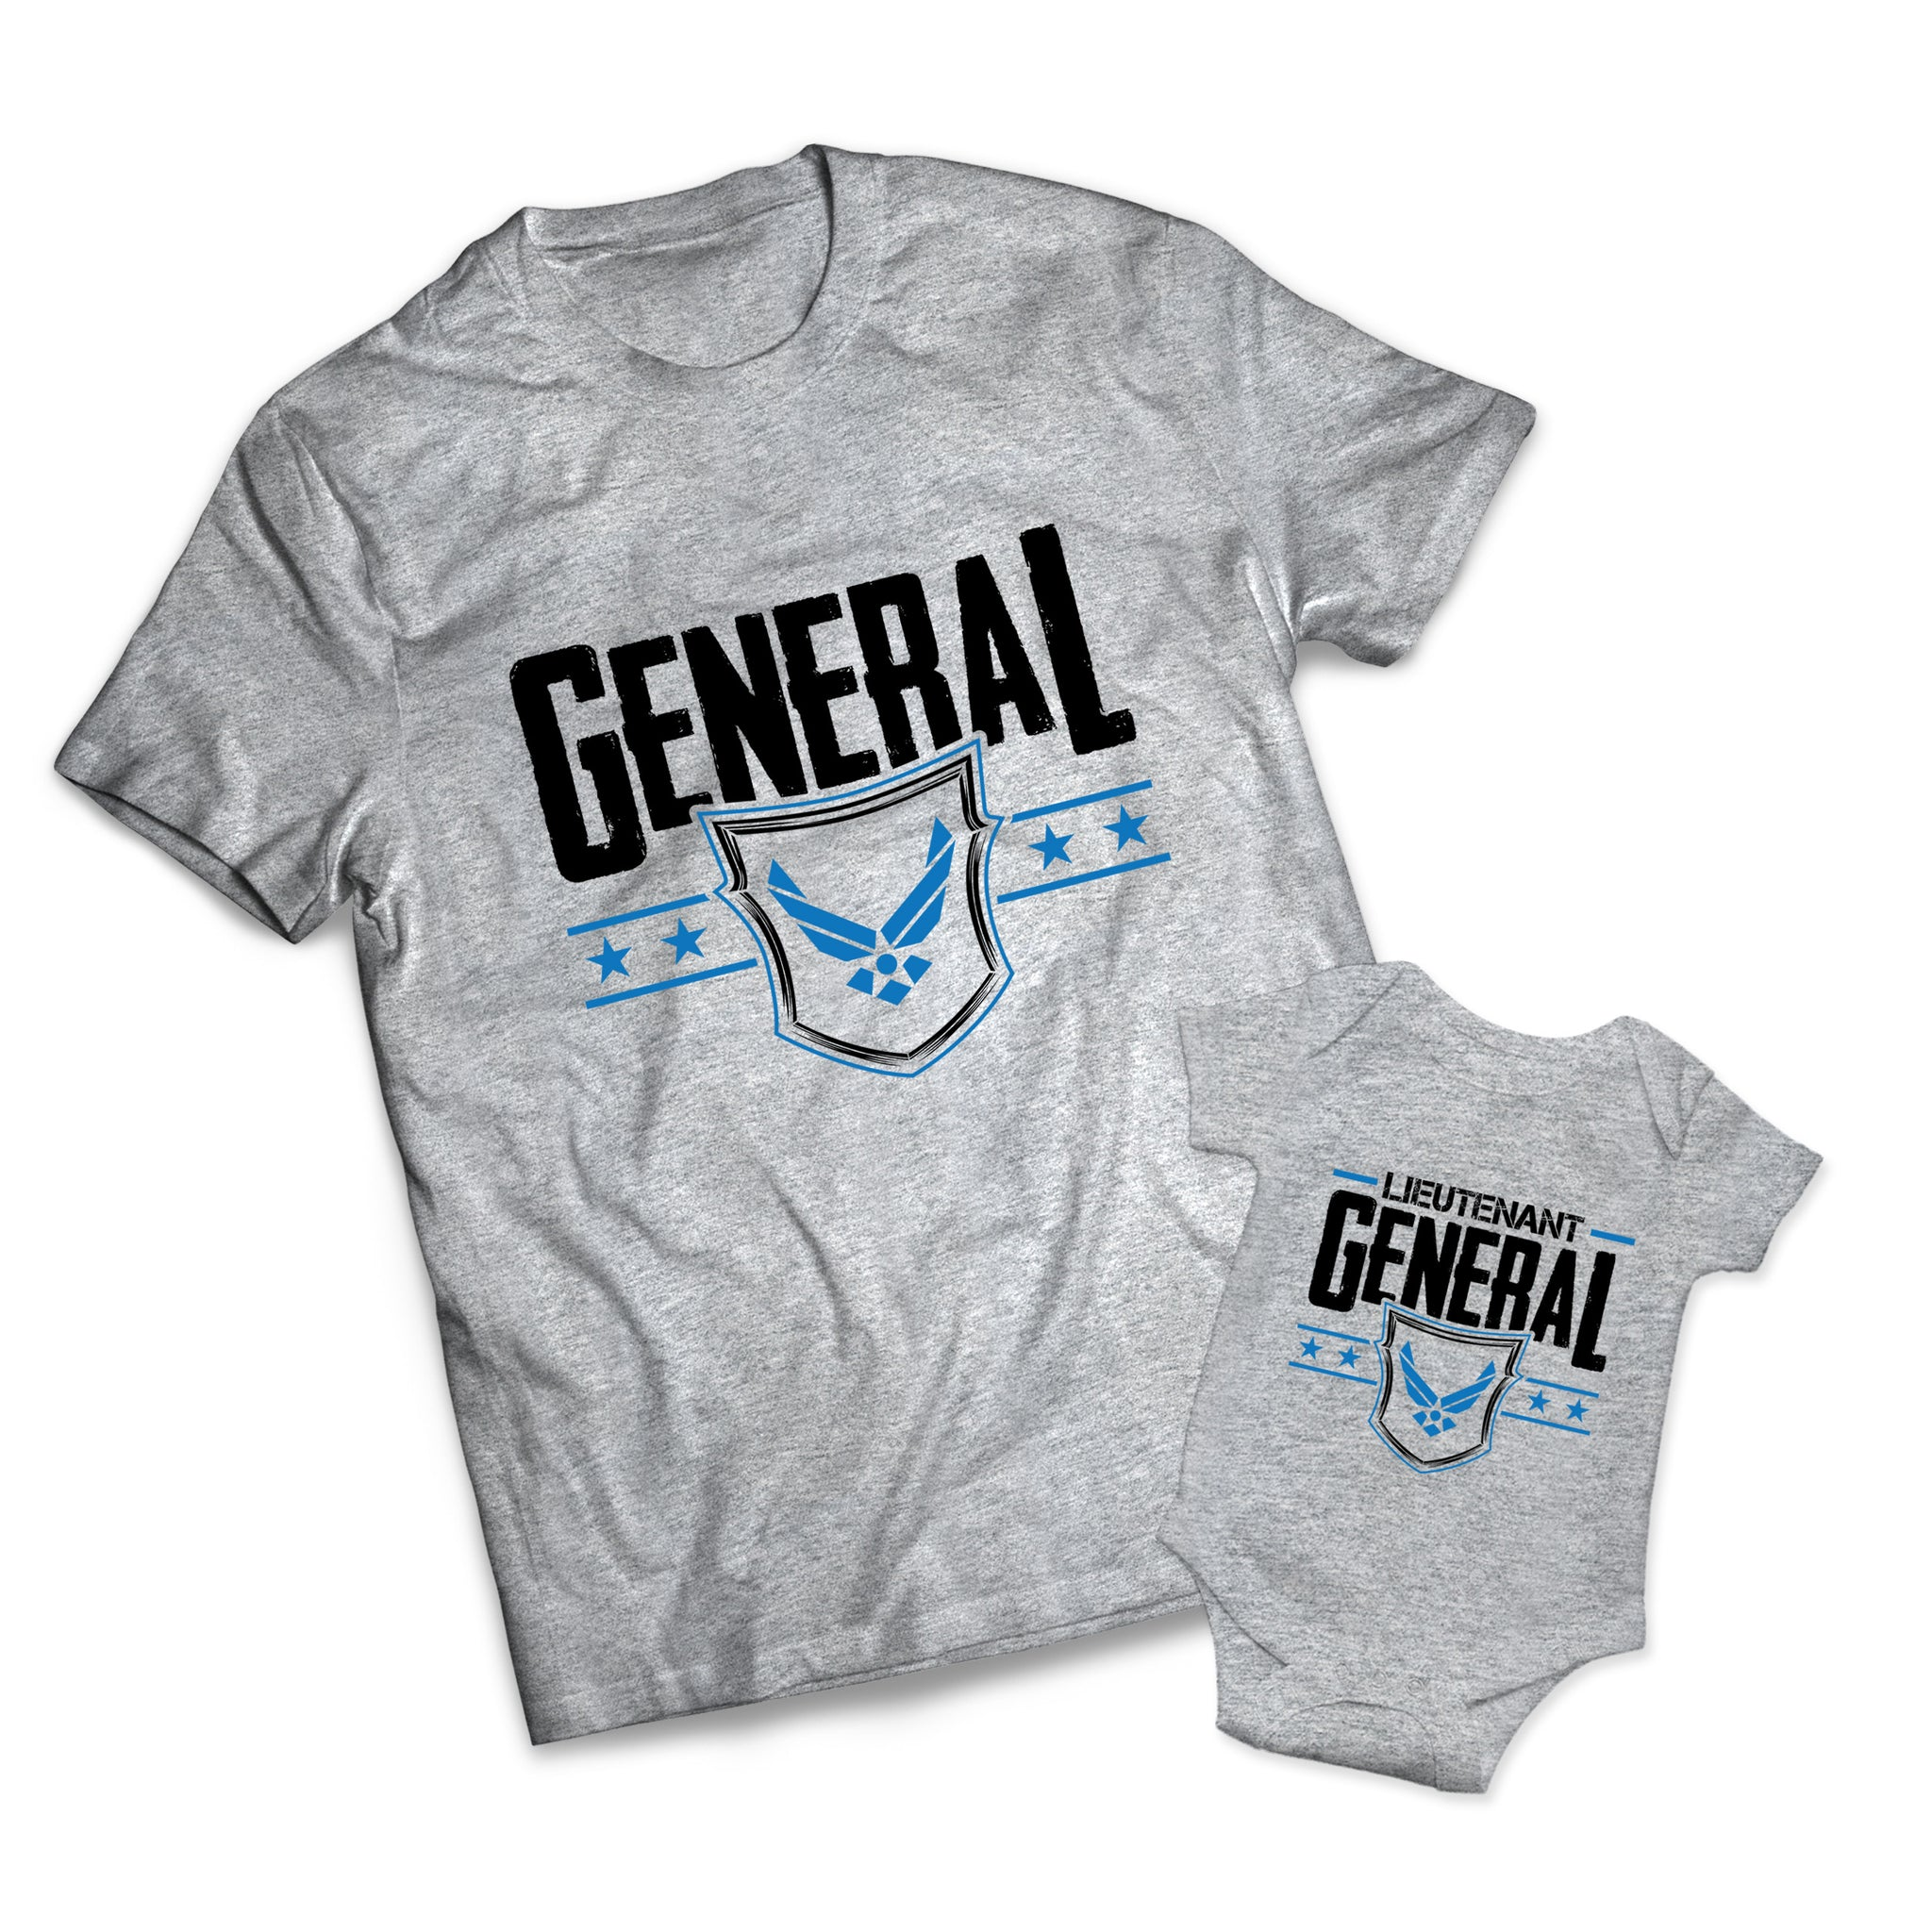 Air Force General Set - Air Force -  Matching Shirts